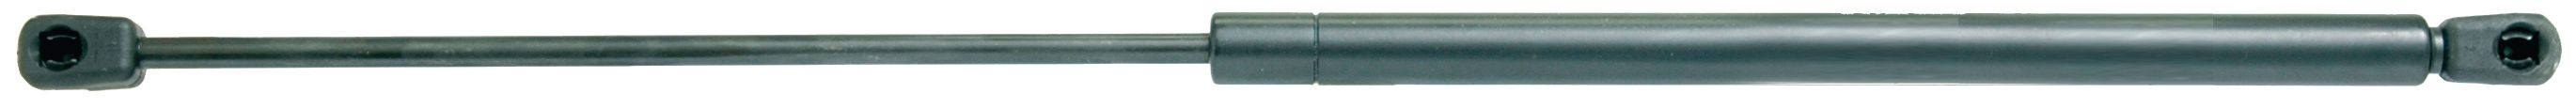 FORD NEW HOLLAND GAS STRUT 19431